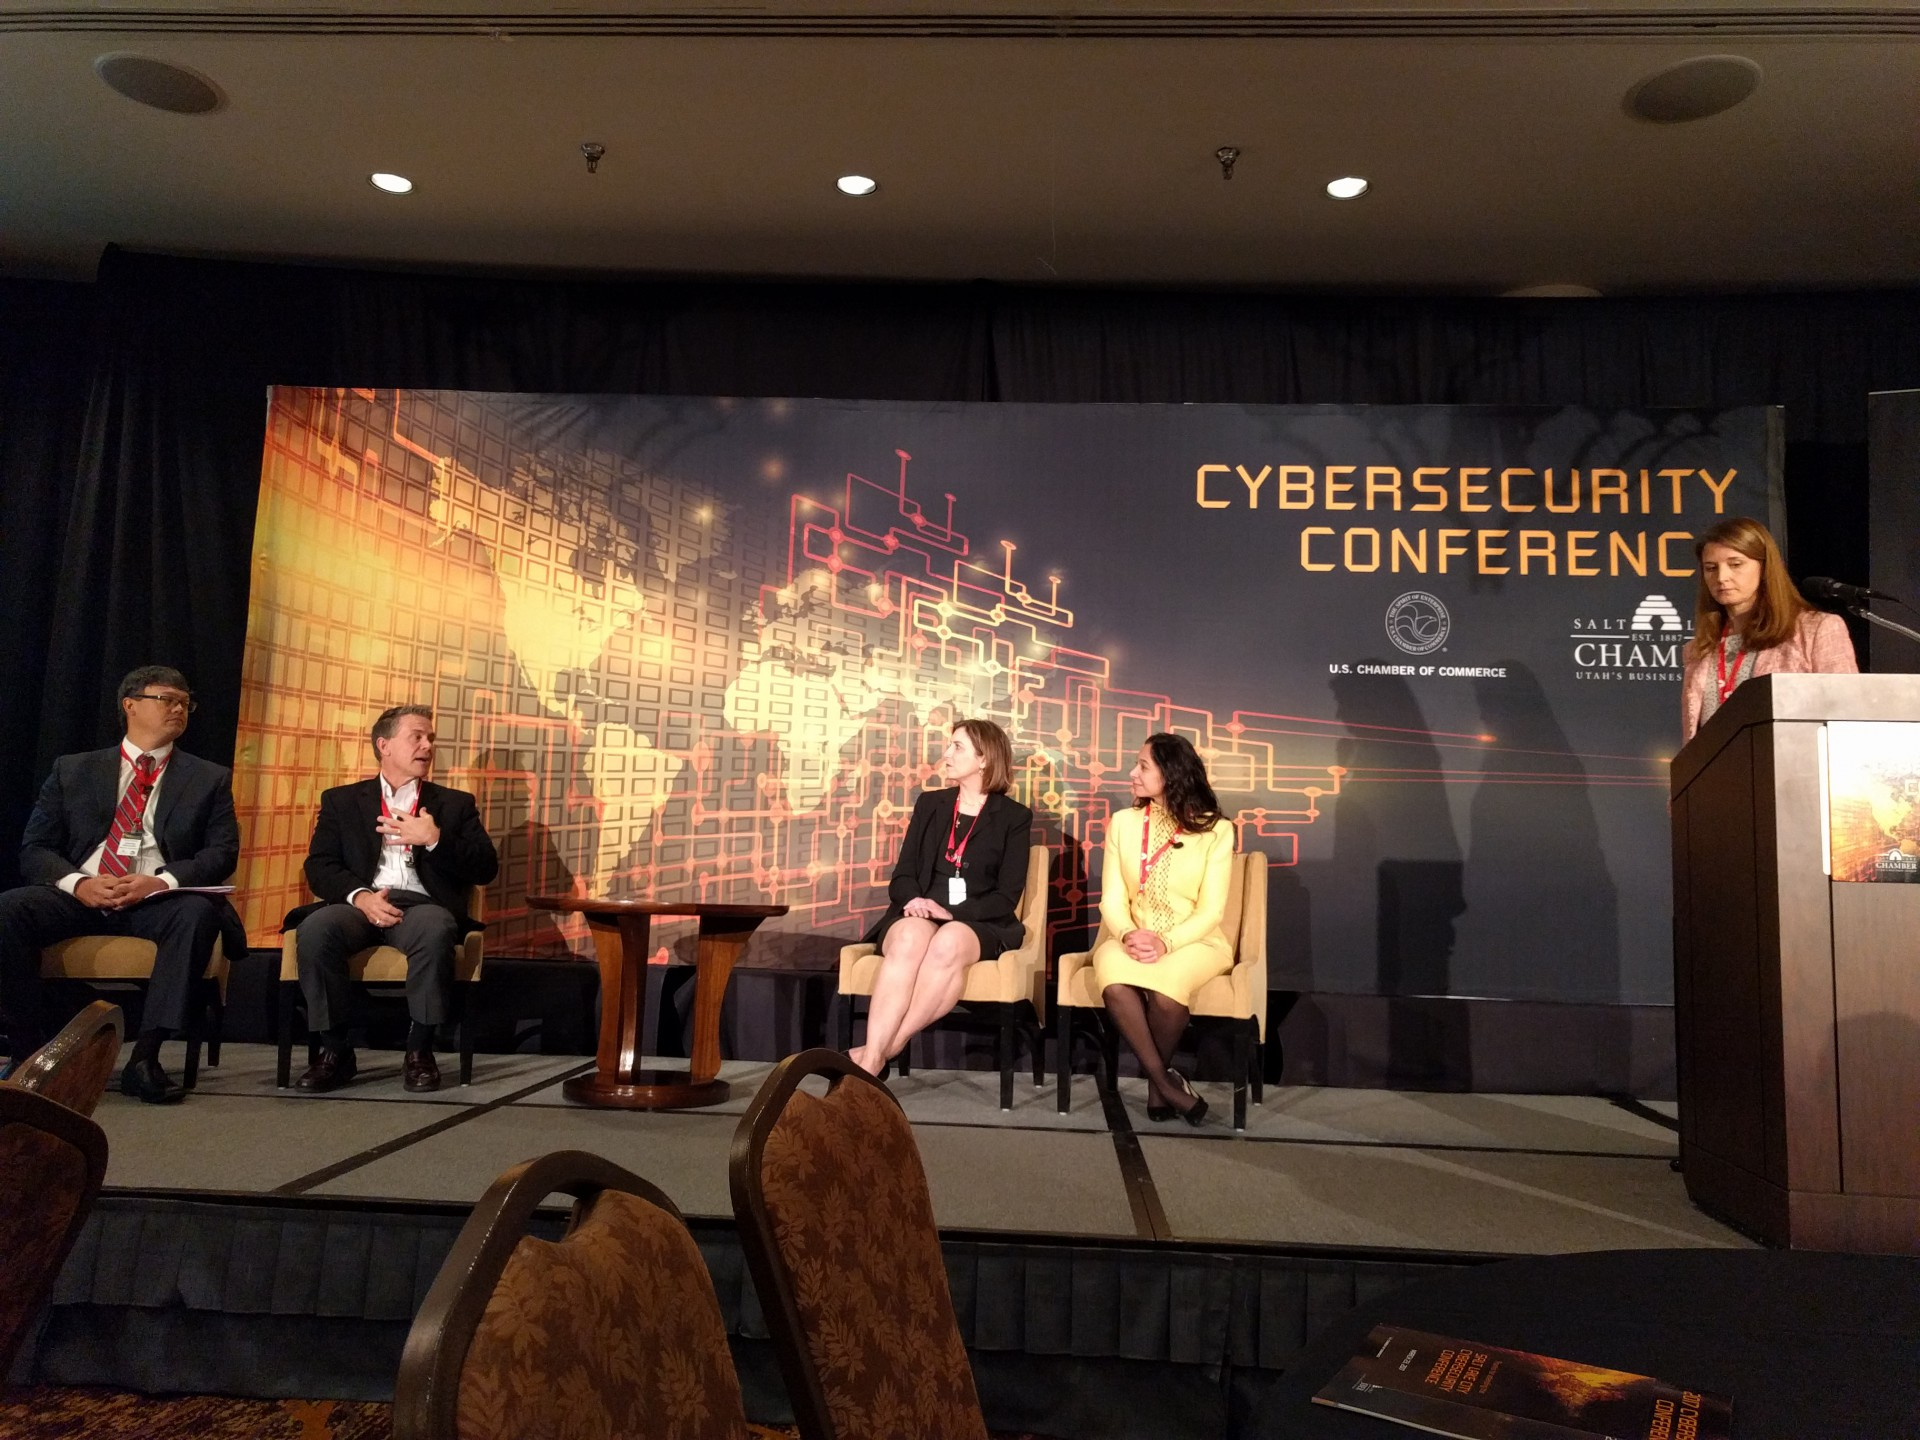 MARCH 2017: CYBERSECURITY CONFERENCE WITH U.S. CHAMBER OF COMMERCE